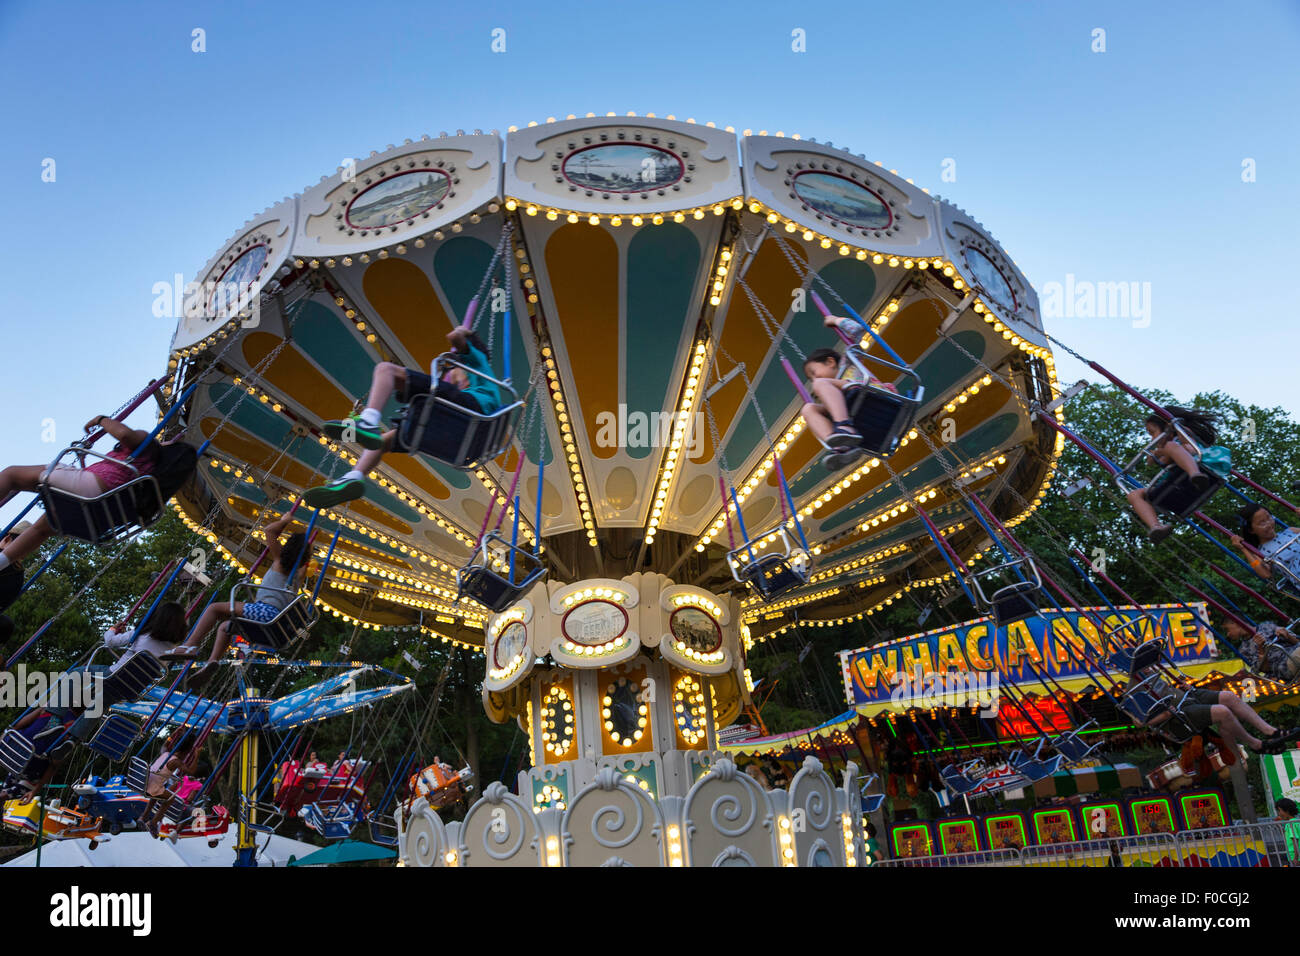 Victorian Gardens, Carnival in Central Park, NYC Stock Photo ...